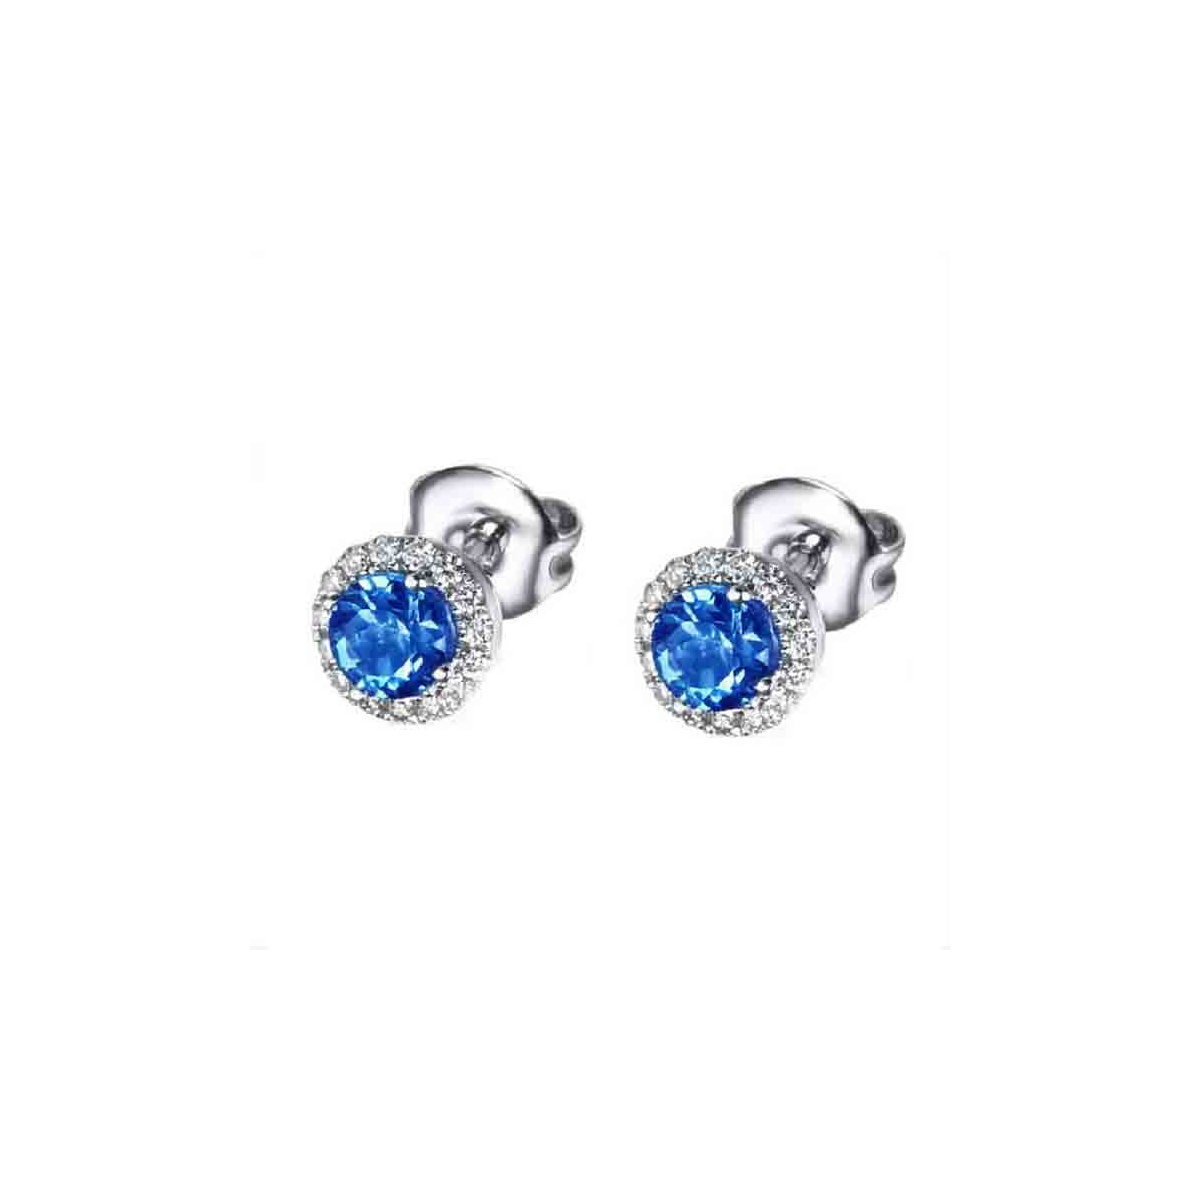 Pendientes de oro blanco con Zafiro y Diamantes 5mm - 0,27 quilates